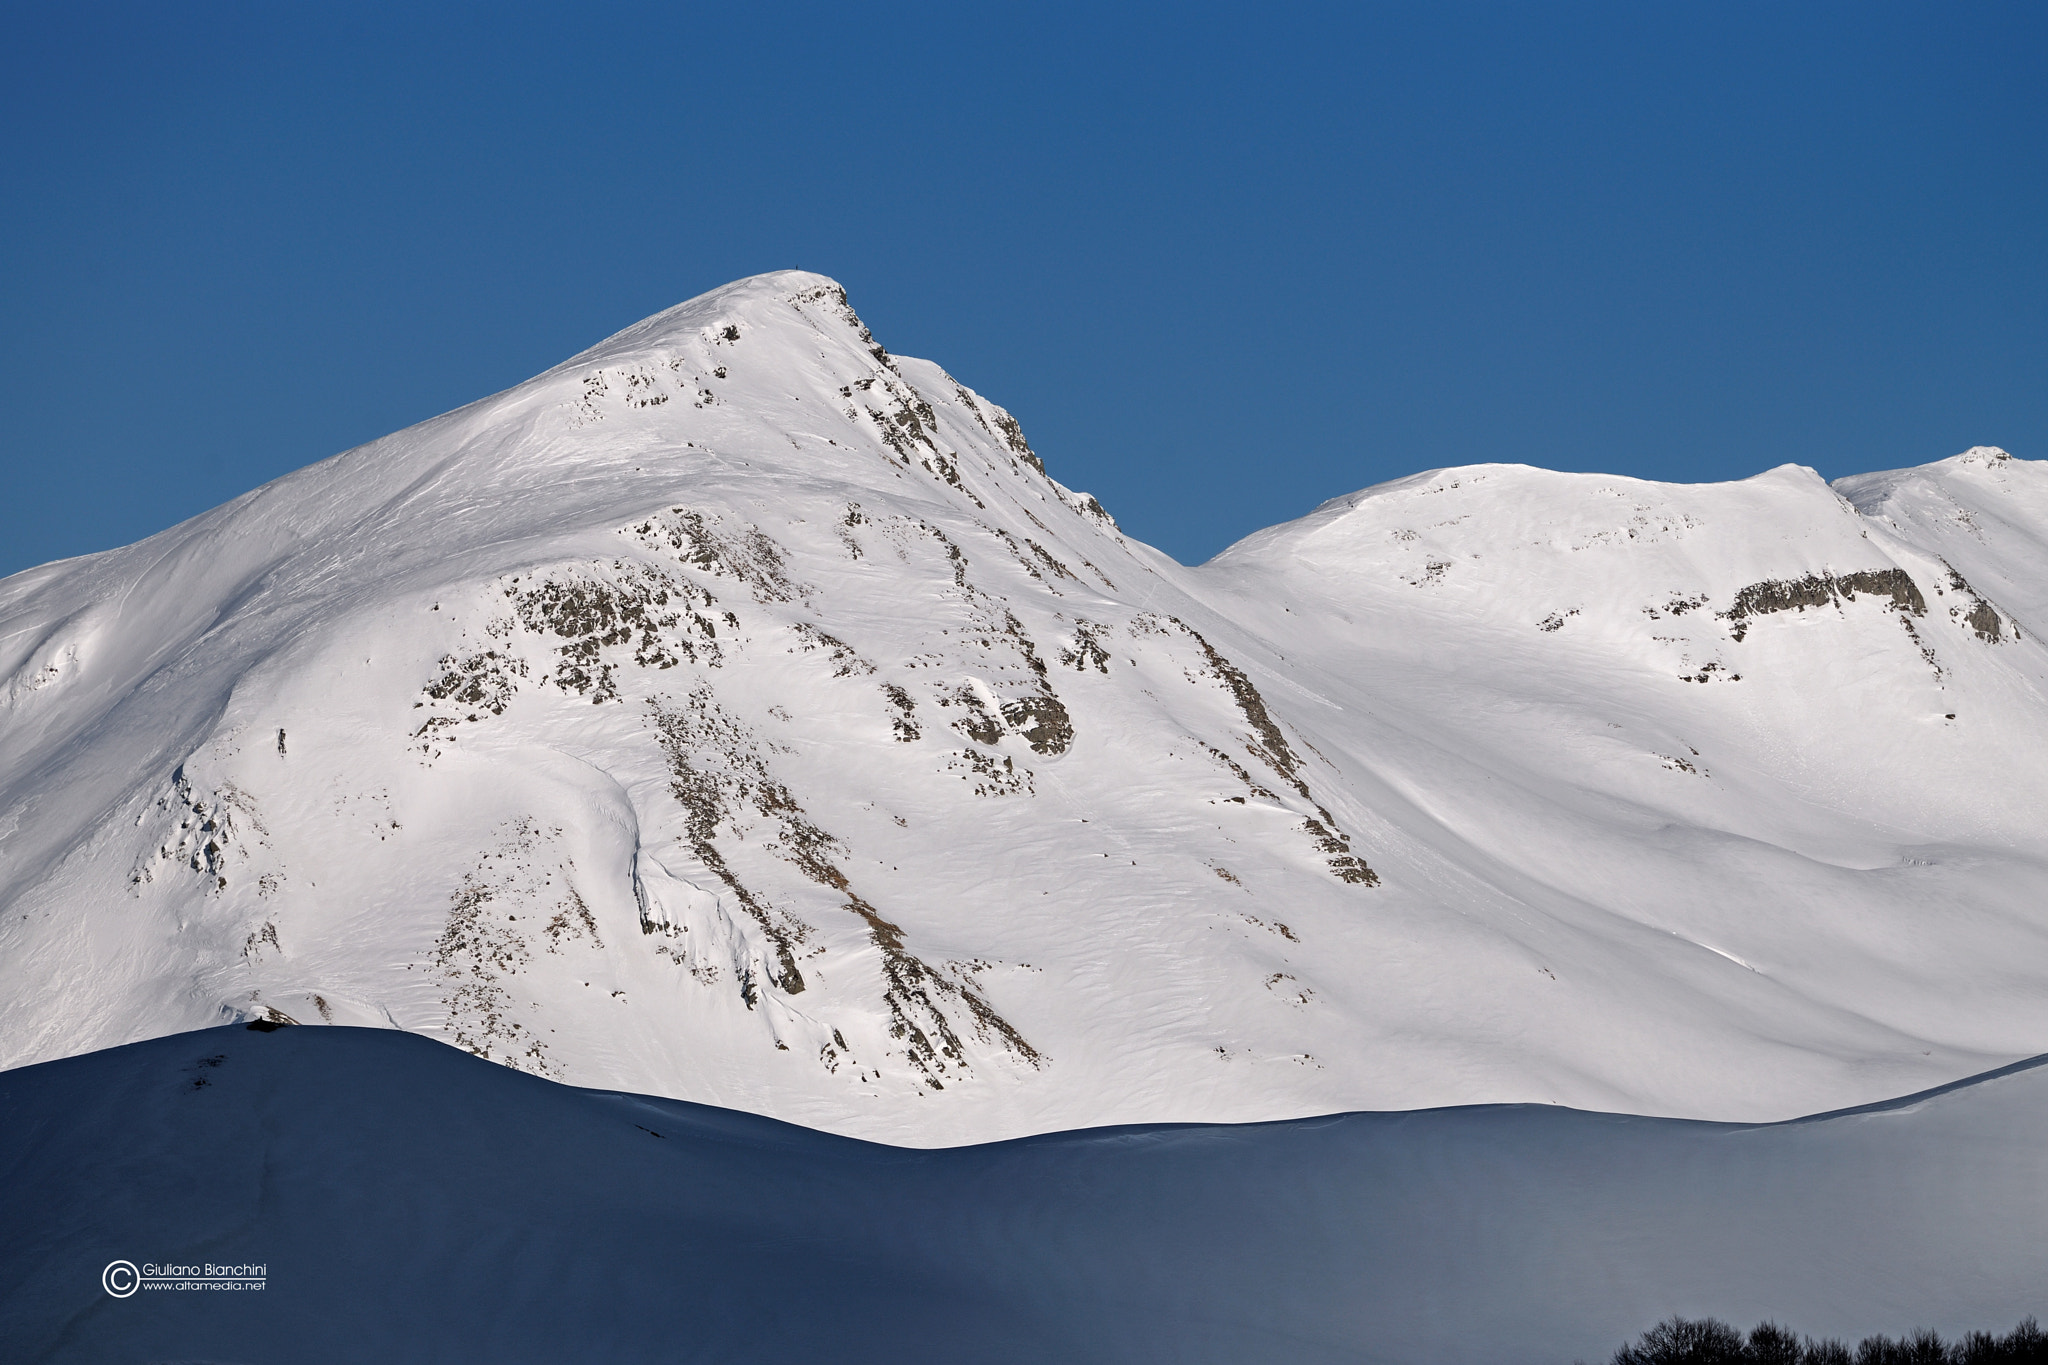 Photograph Monte Cusna by Giuliano Bianchini on 500px